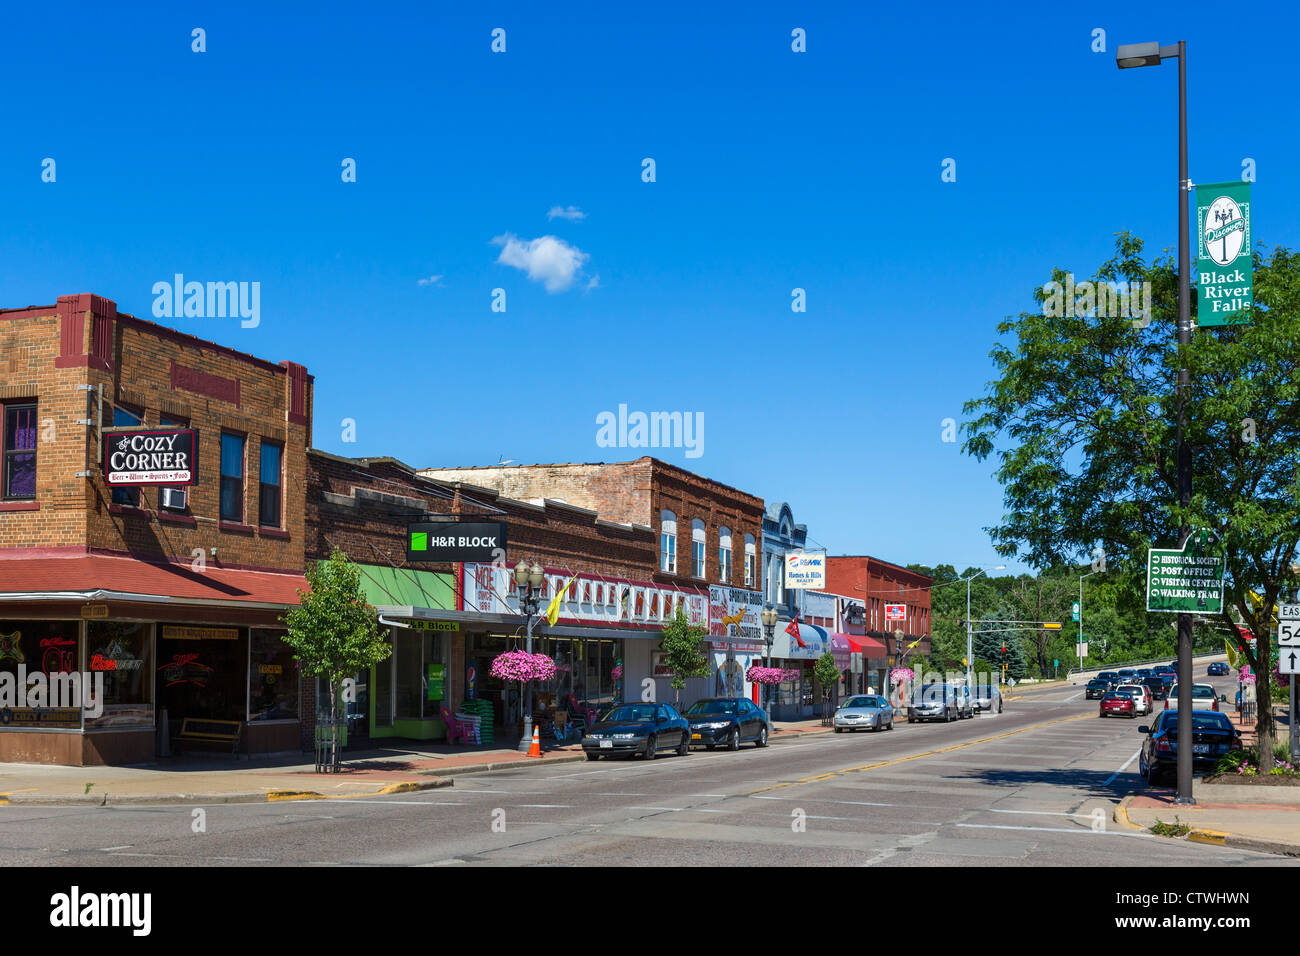 Traditional Main Street in a small US town, Black River Falls, Wisconsin, USA - Stock Image